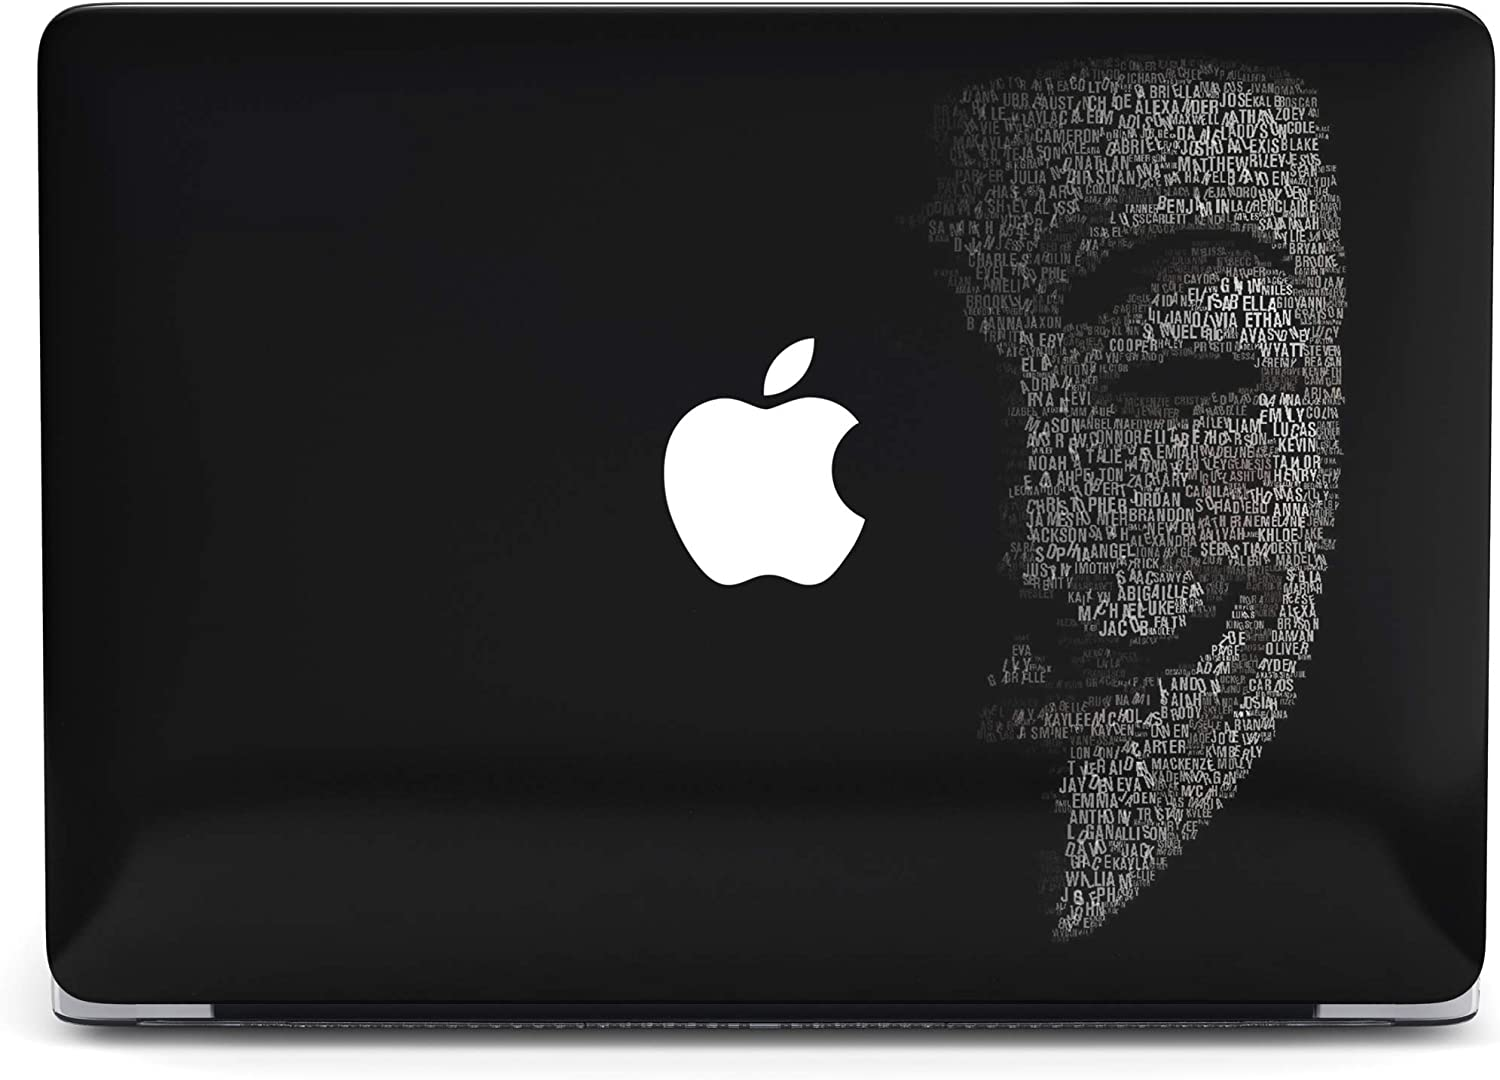 Italy V for Vendetta Protective case Compatible with Apple MacBook Mac Air Pro 13 12 15 16 13.3 inch Retina Cover SN8 (Pro 15